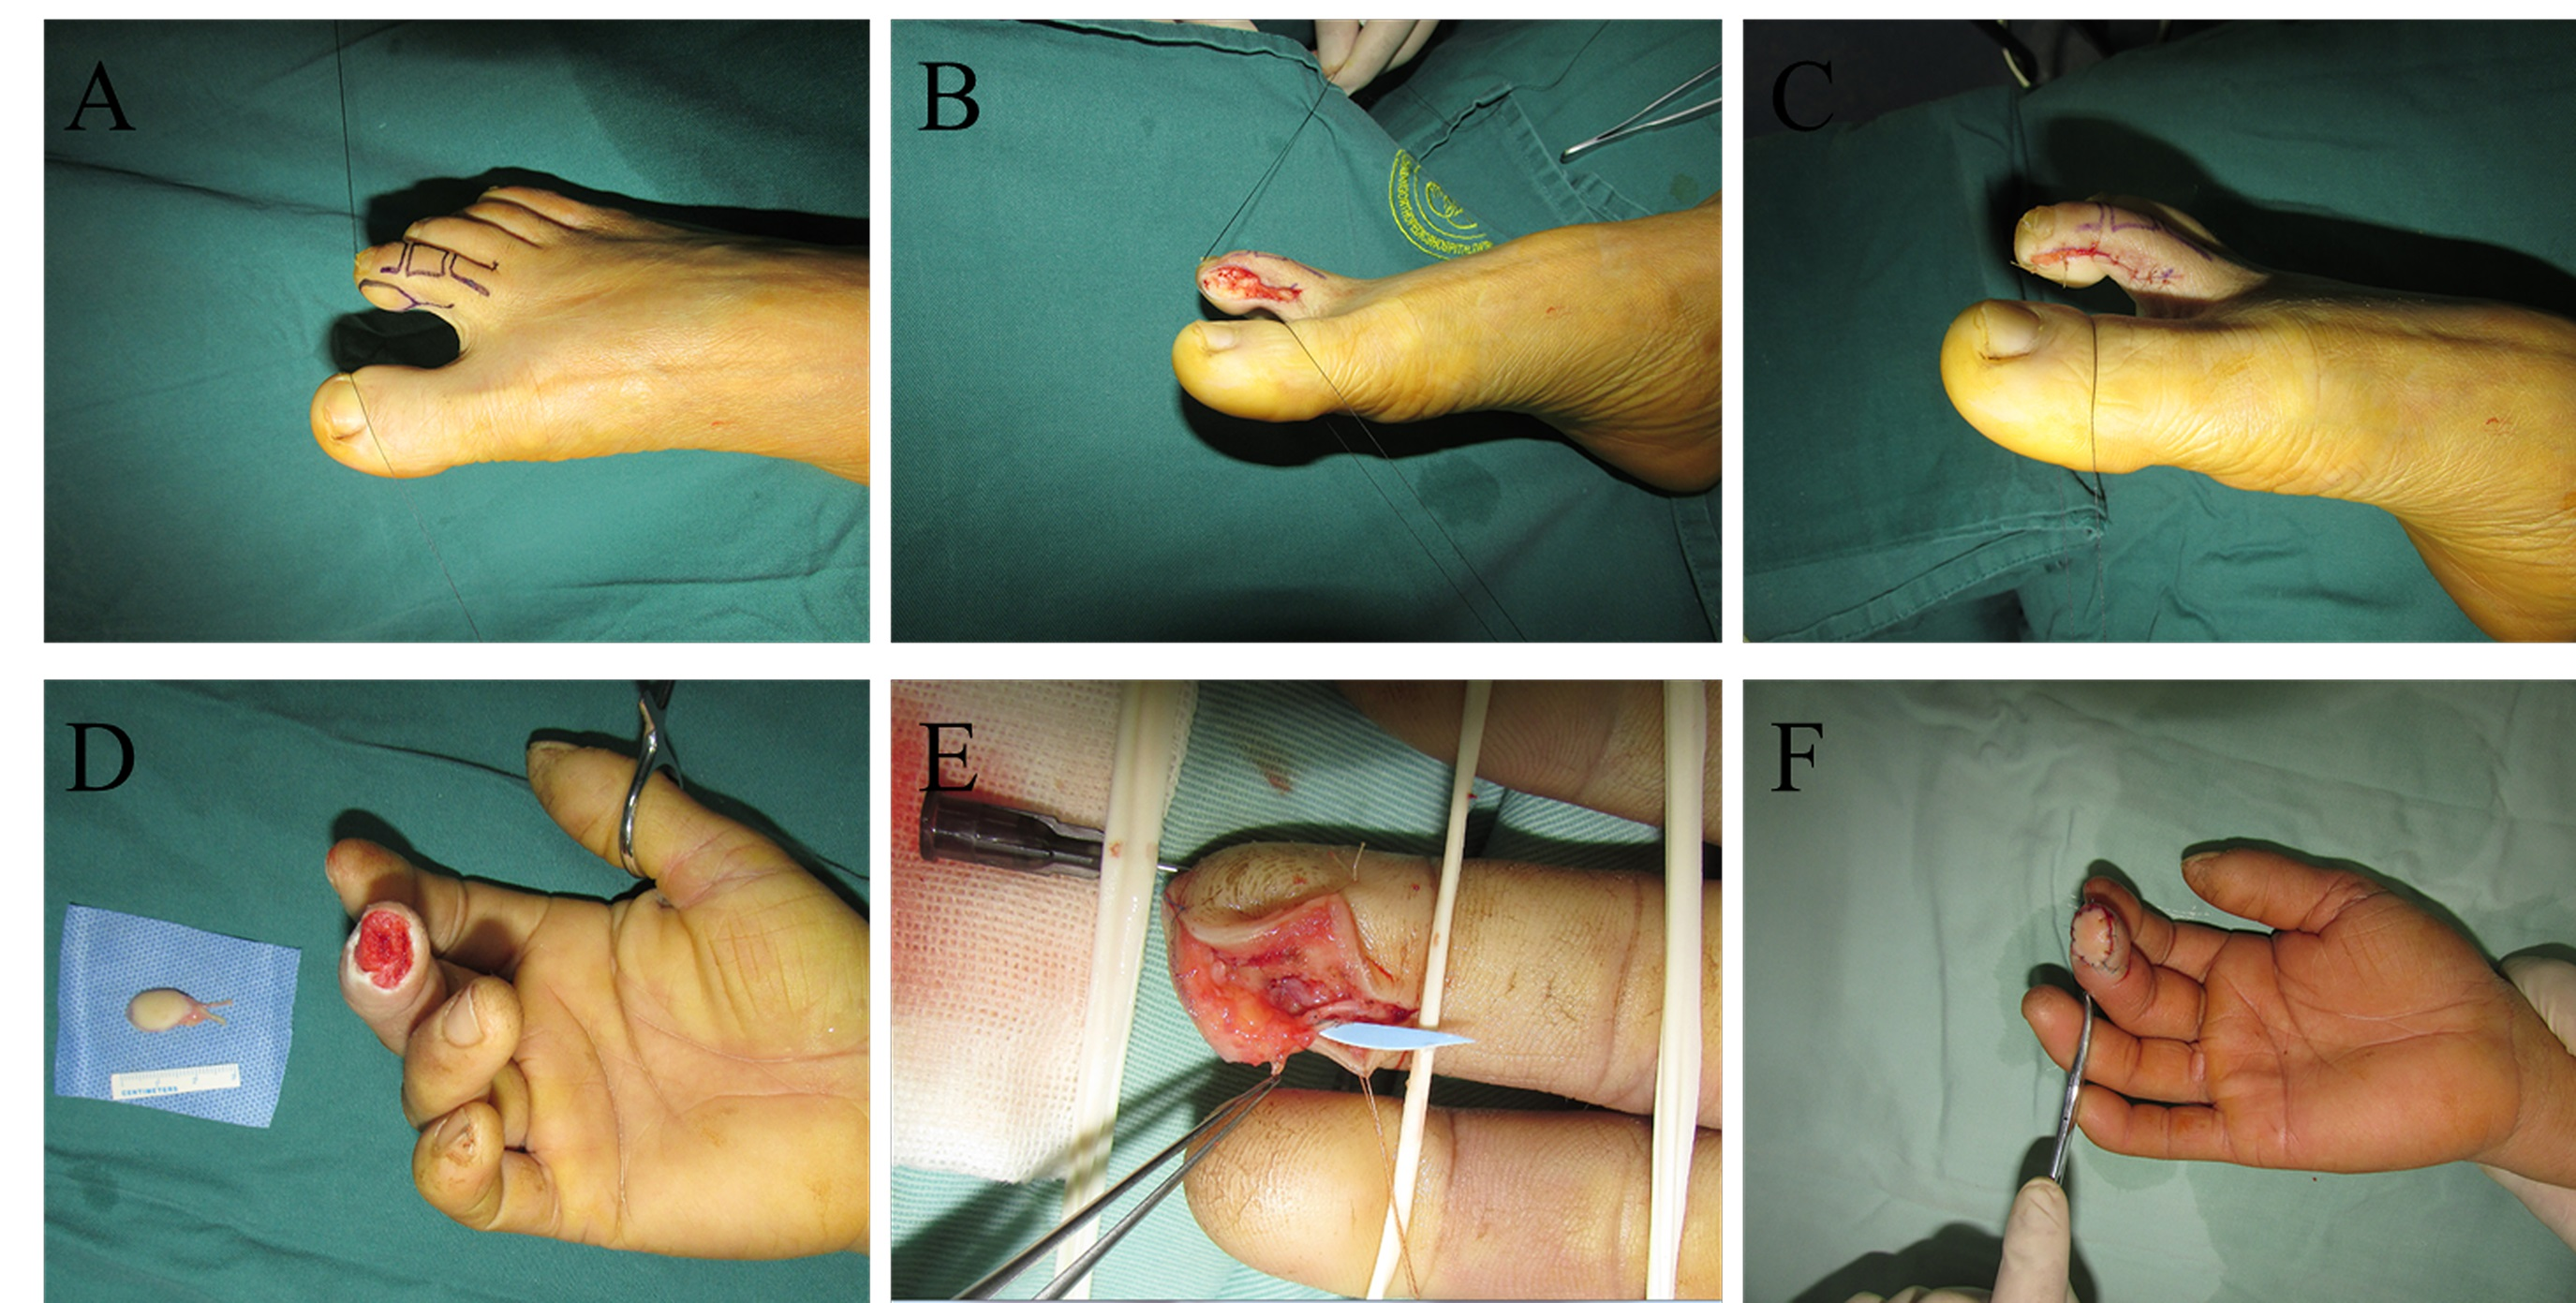 A. Flap design at the donor site before the operation. B. The flap was dissected. C. The donor site was closed without a skin graft. D. The harvested flap and the recipient site before transplantation. E. The anastomosis during transplantation. F. The flap after transplantation.